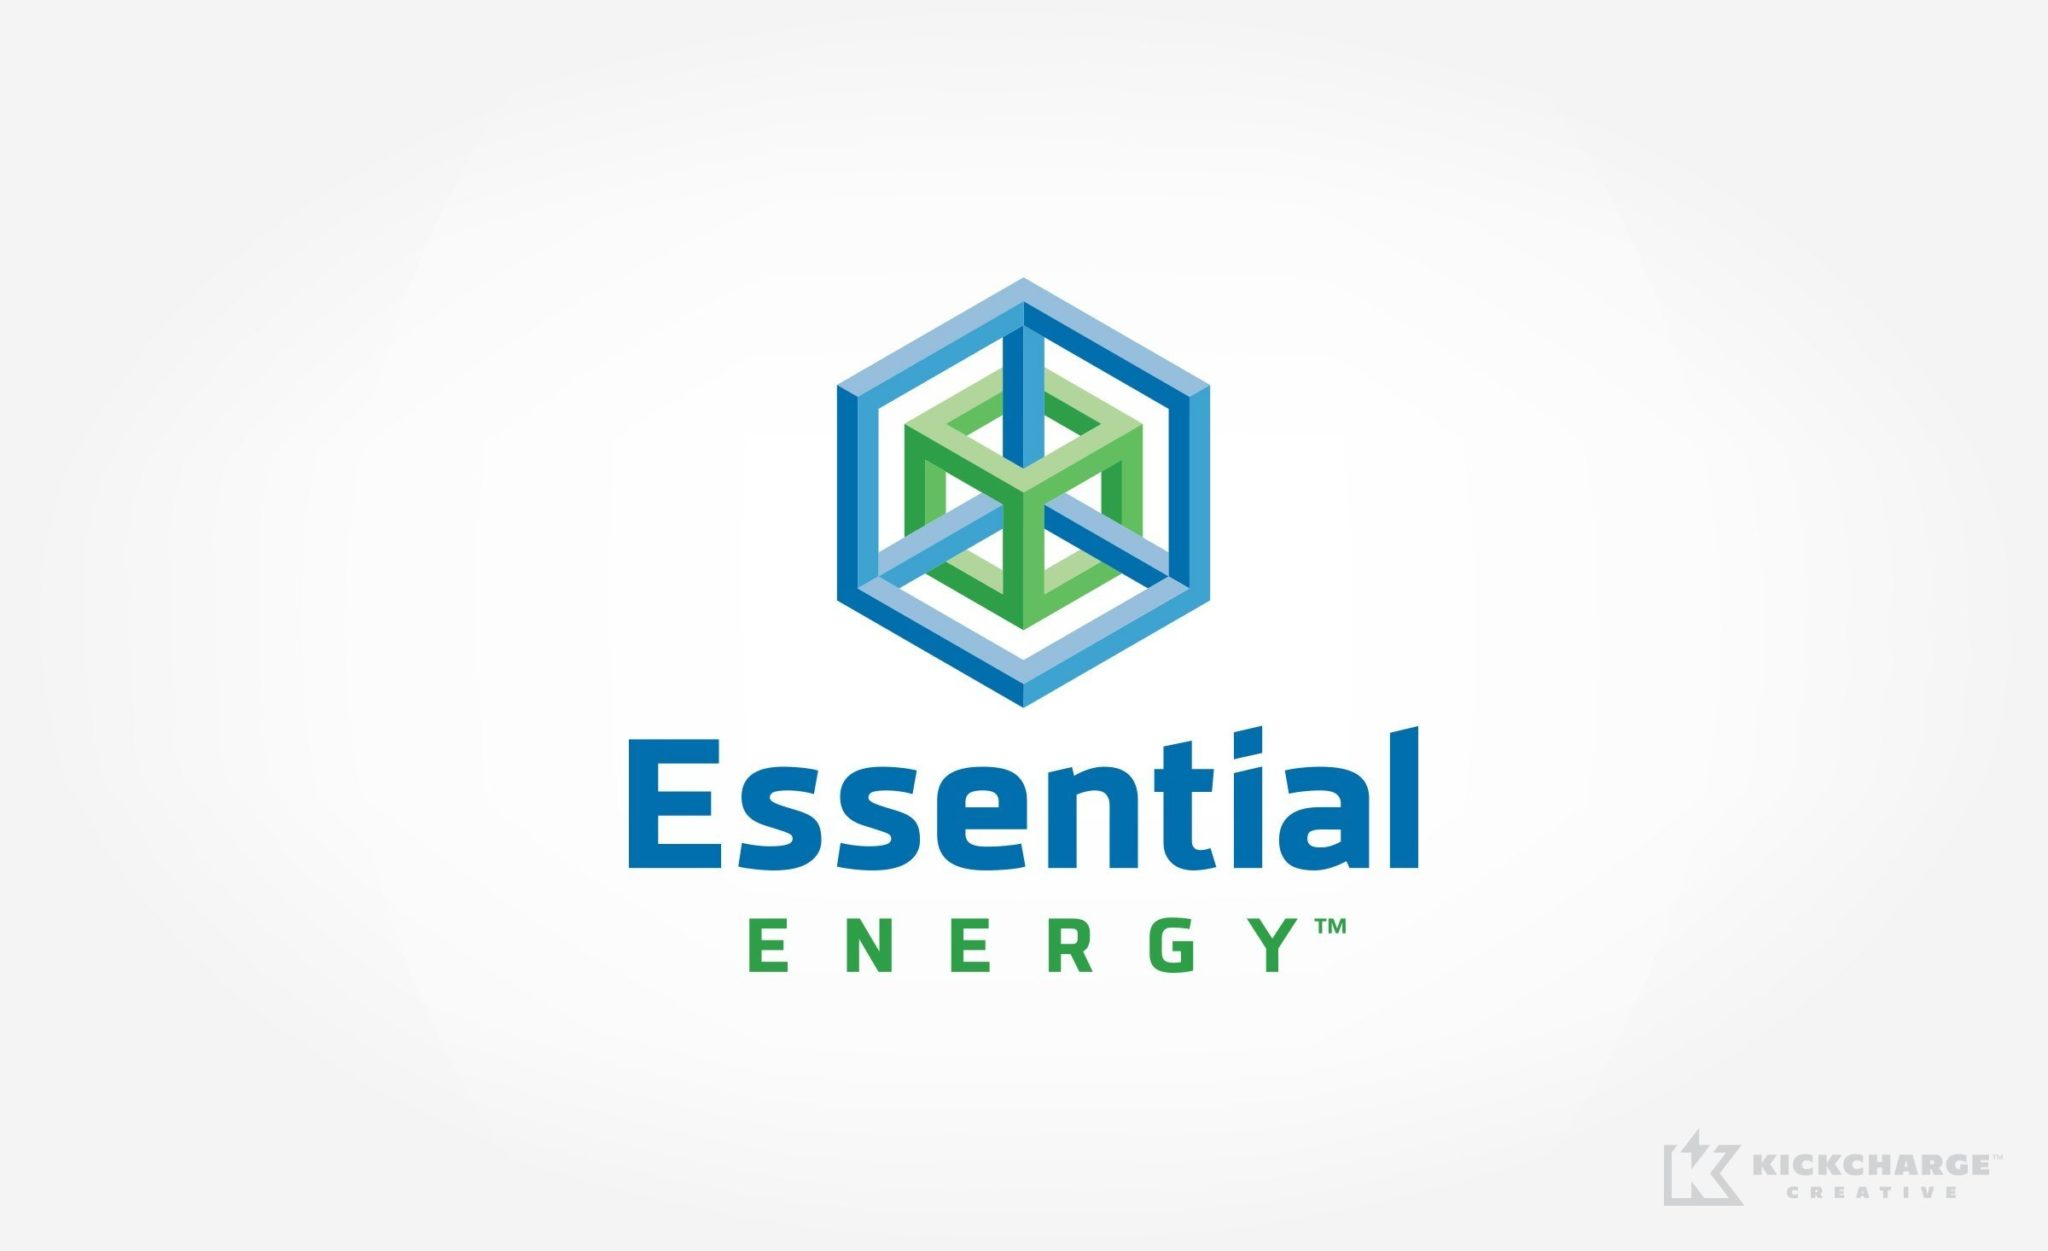 Essential Energy